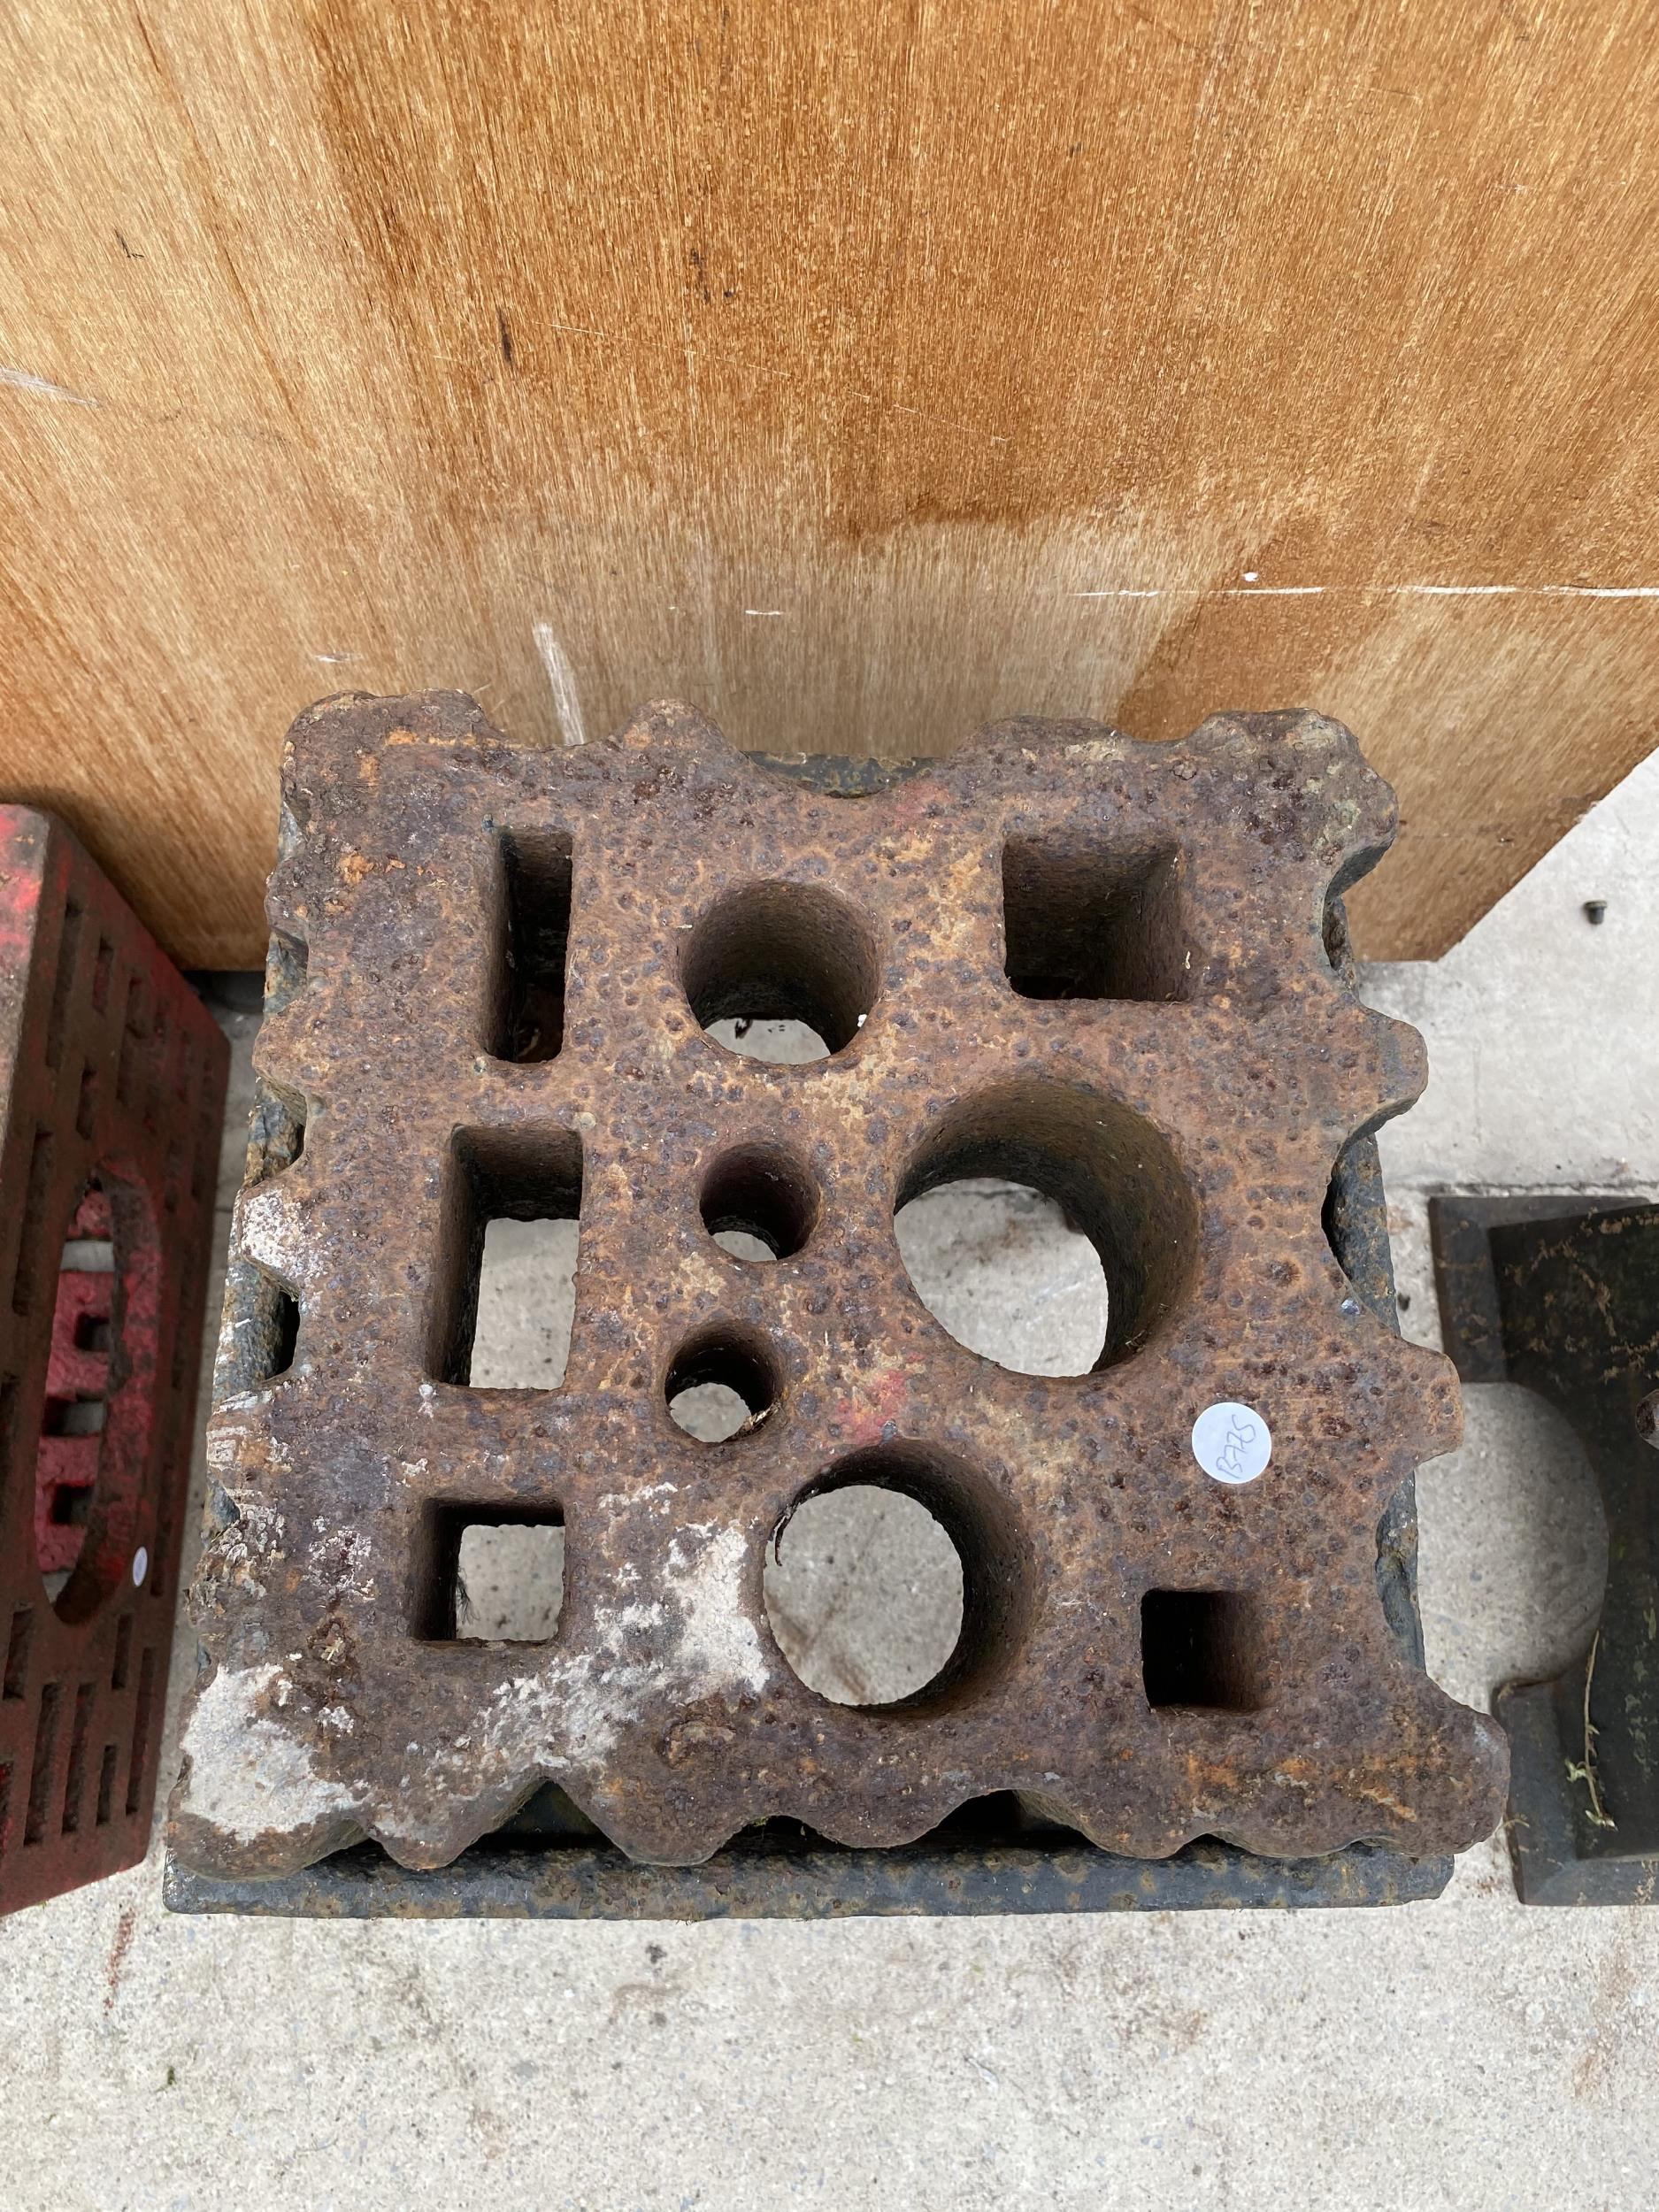 A LARGE VINTAGE SWAGE BLOCK WITH HEAVY CAST IRON STAND - Image 2 of 7